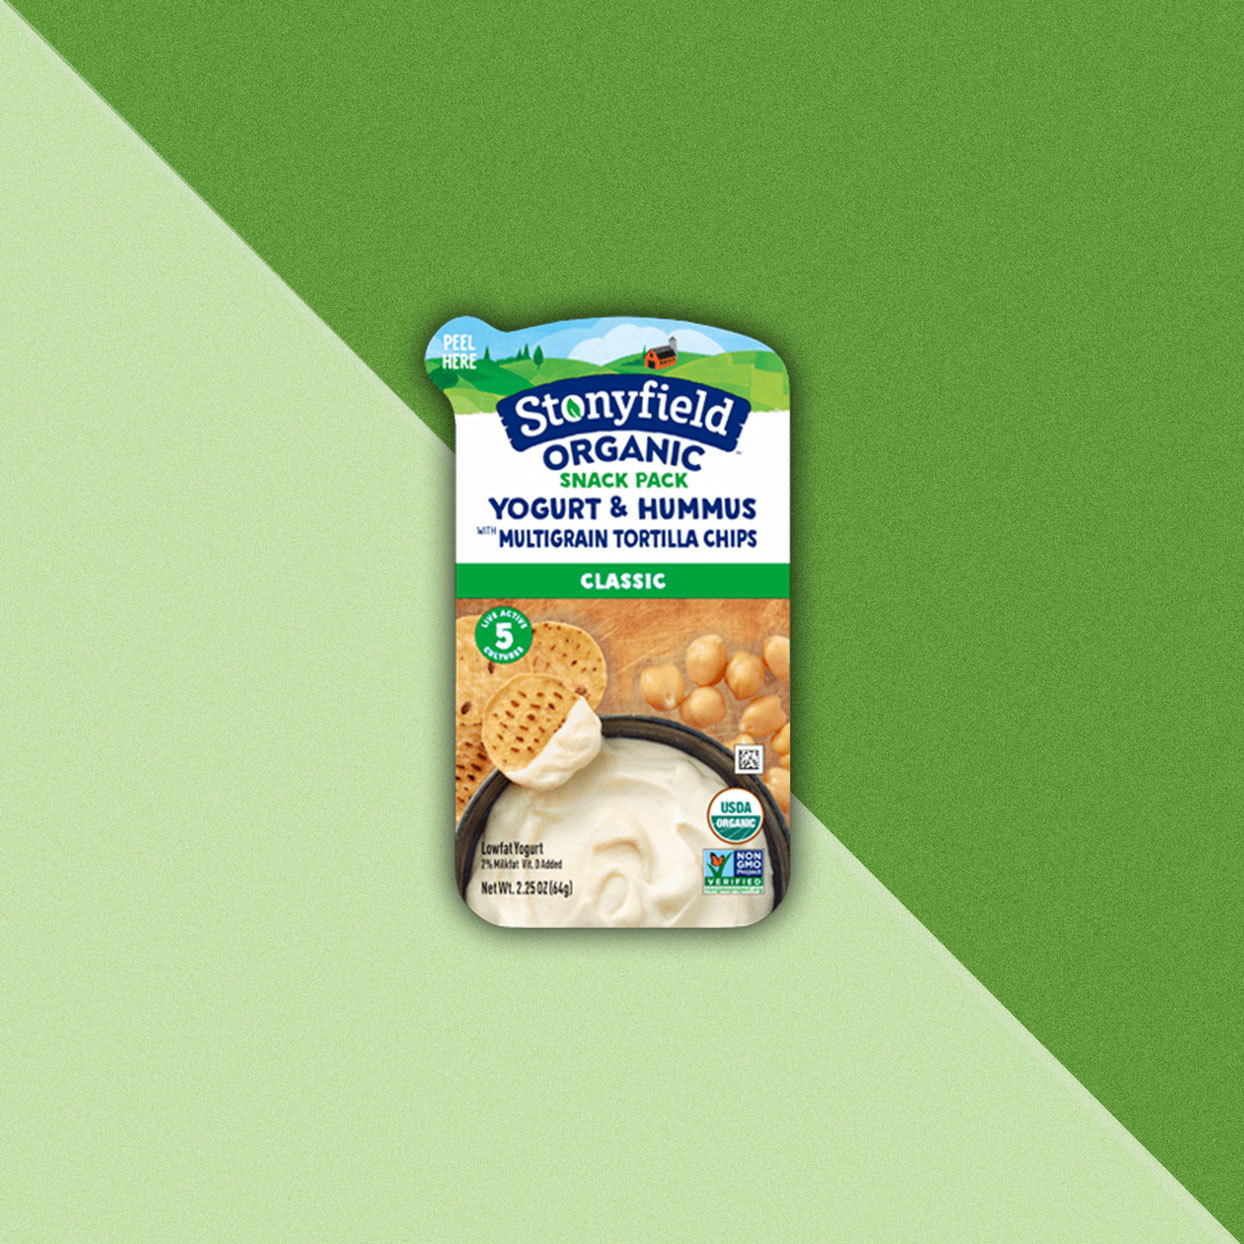 Stonyfield Organic Snack Packs